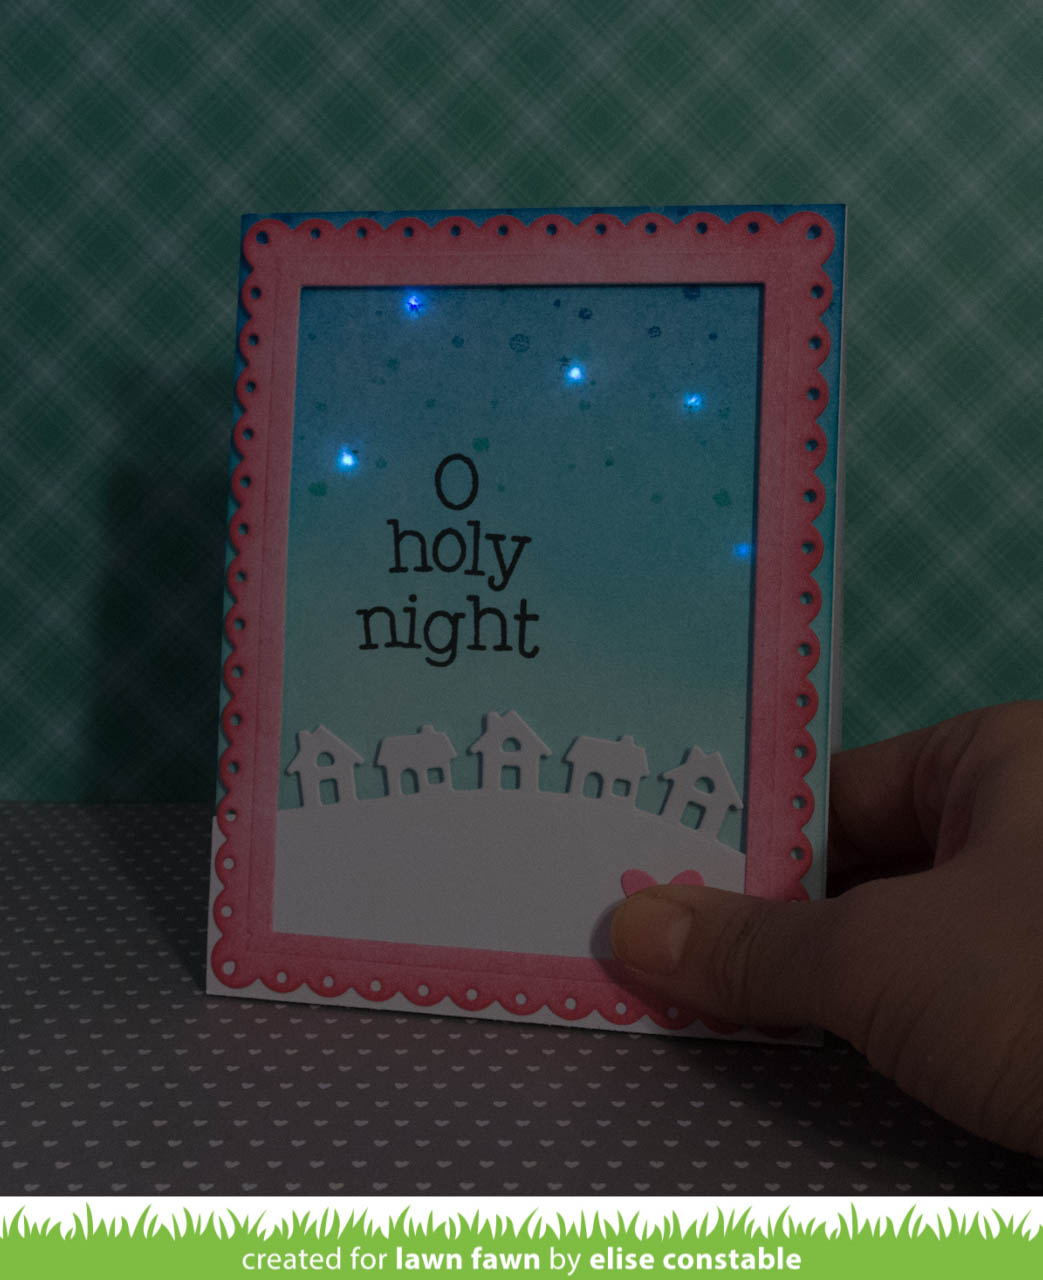 A Fun Collaboration With Chibitronics Day One The Lawn Fawn Blog Second Circuit Set I Purchased Was Sticker Elise Created Beautifully Simple Little Town Border Design Fabulous Starry Sky You May Notice Sneak Peek Of Fancy New Die Coming In Our